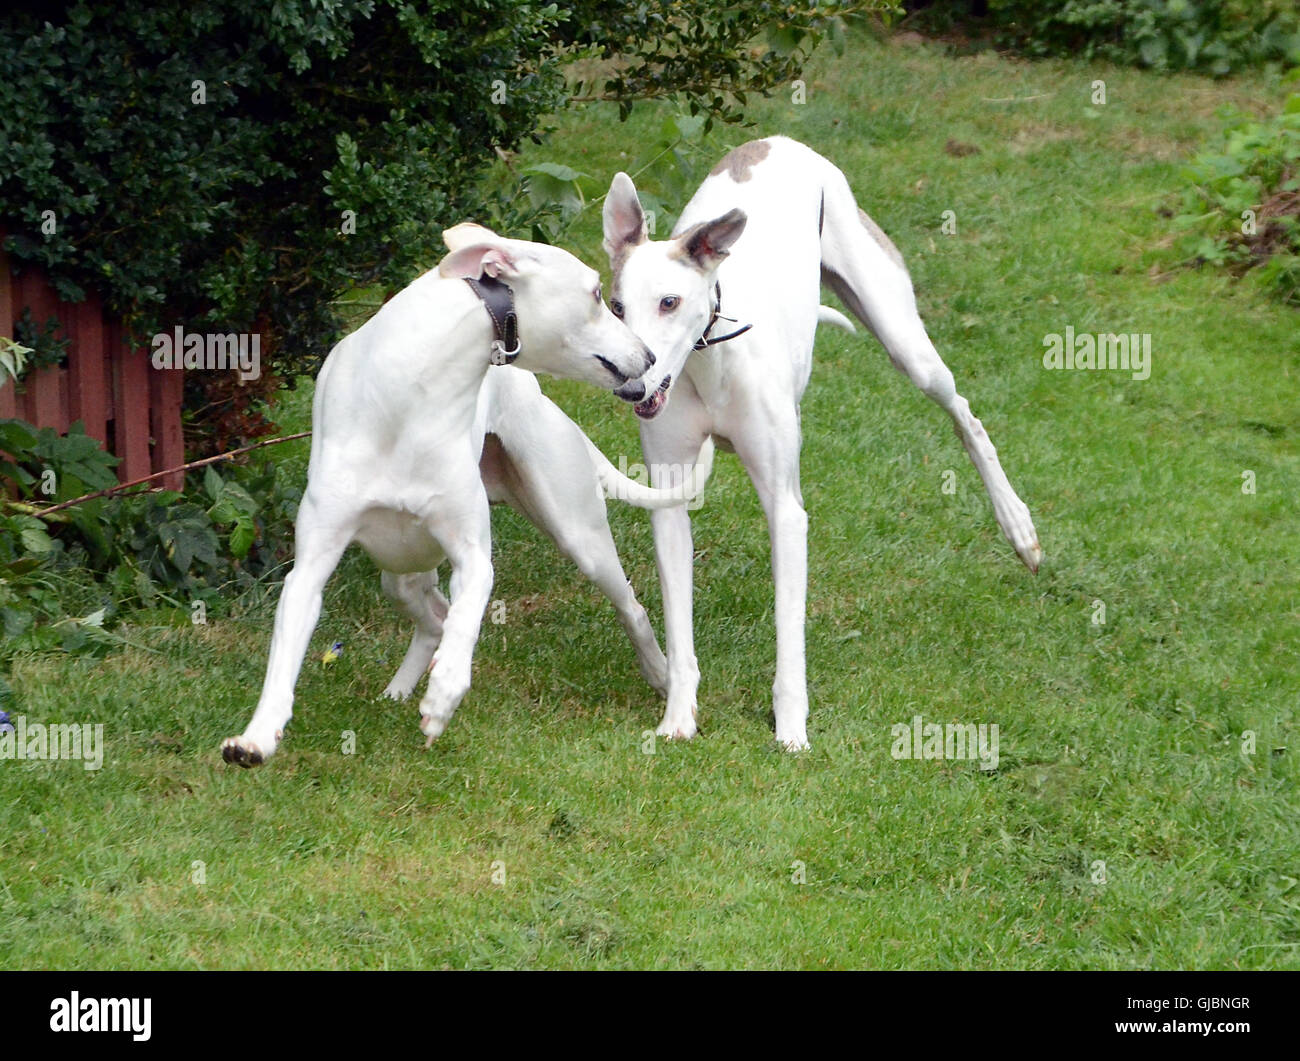 Two dogs, a whippet and a galgo play and race. - Stock Image